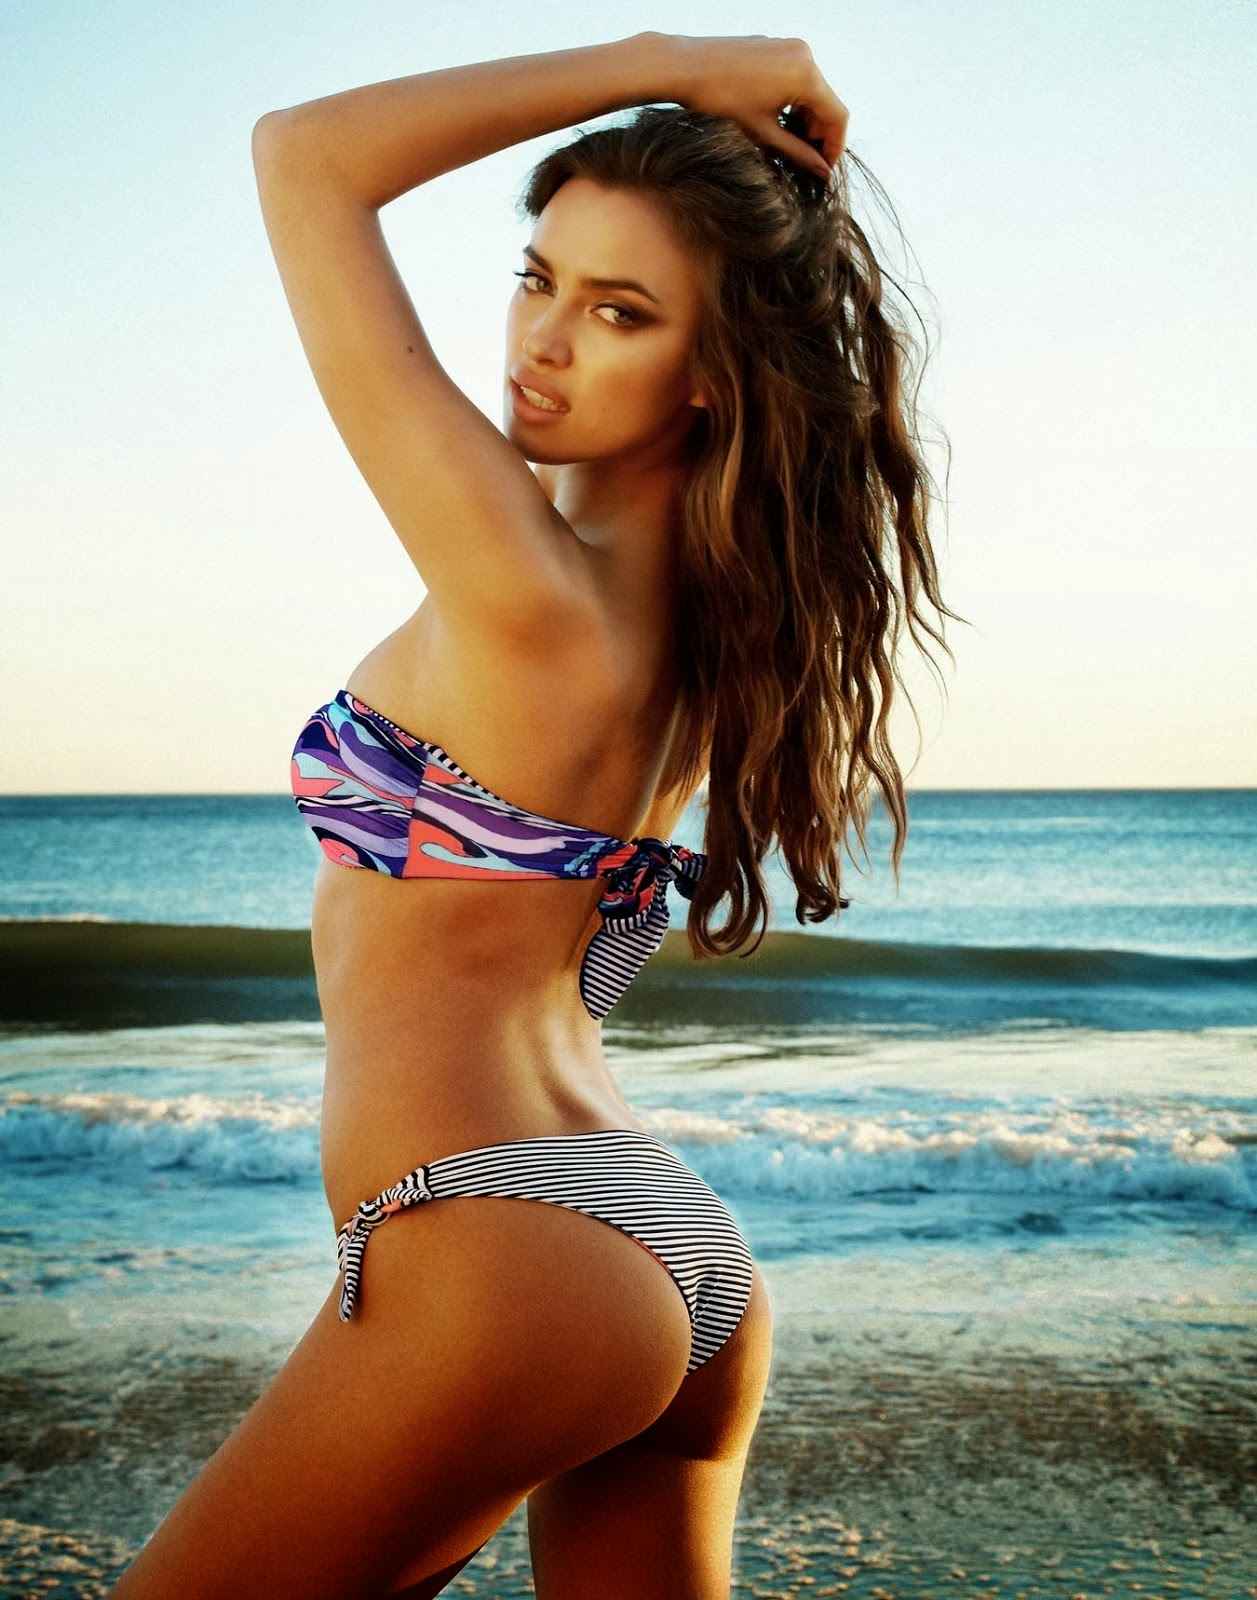 Irina Shayk Sexy Round Ass Beach Bunny Bikini Photoshoot ...